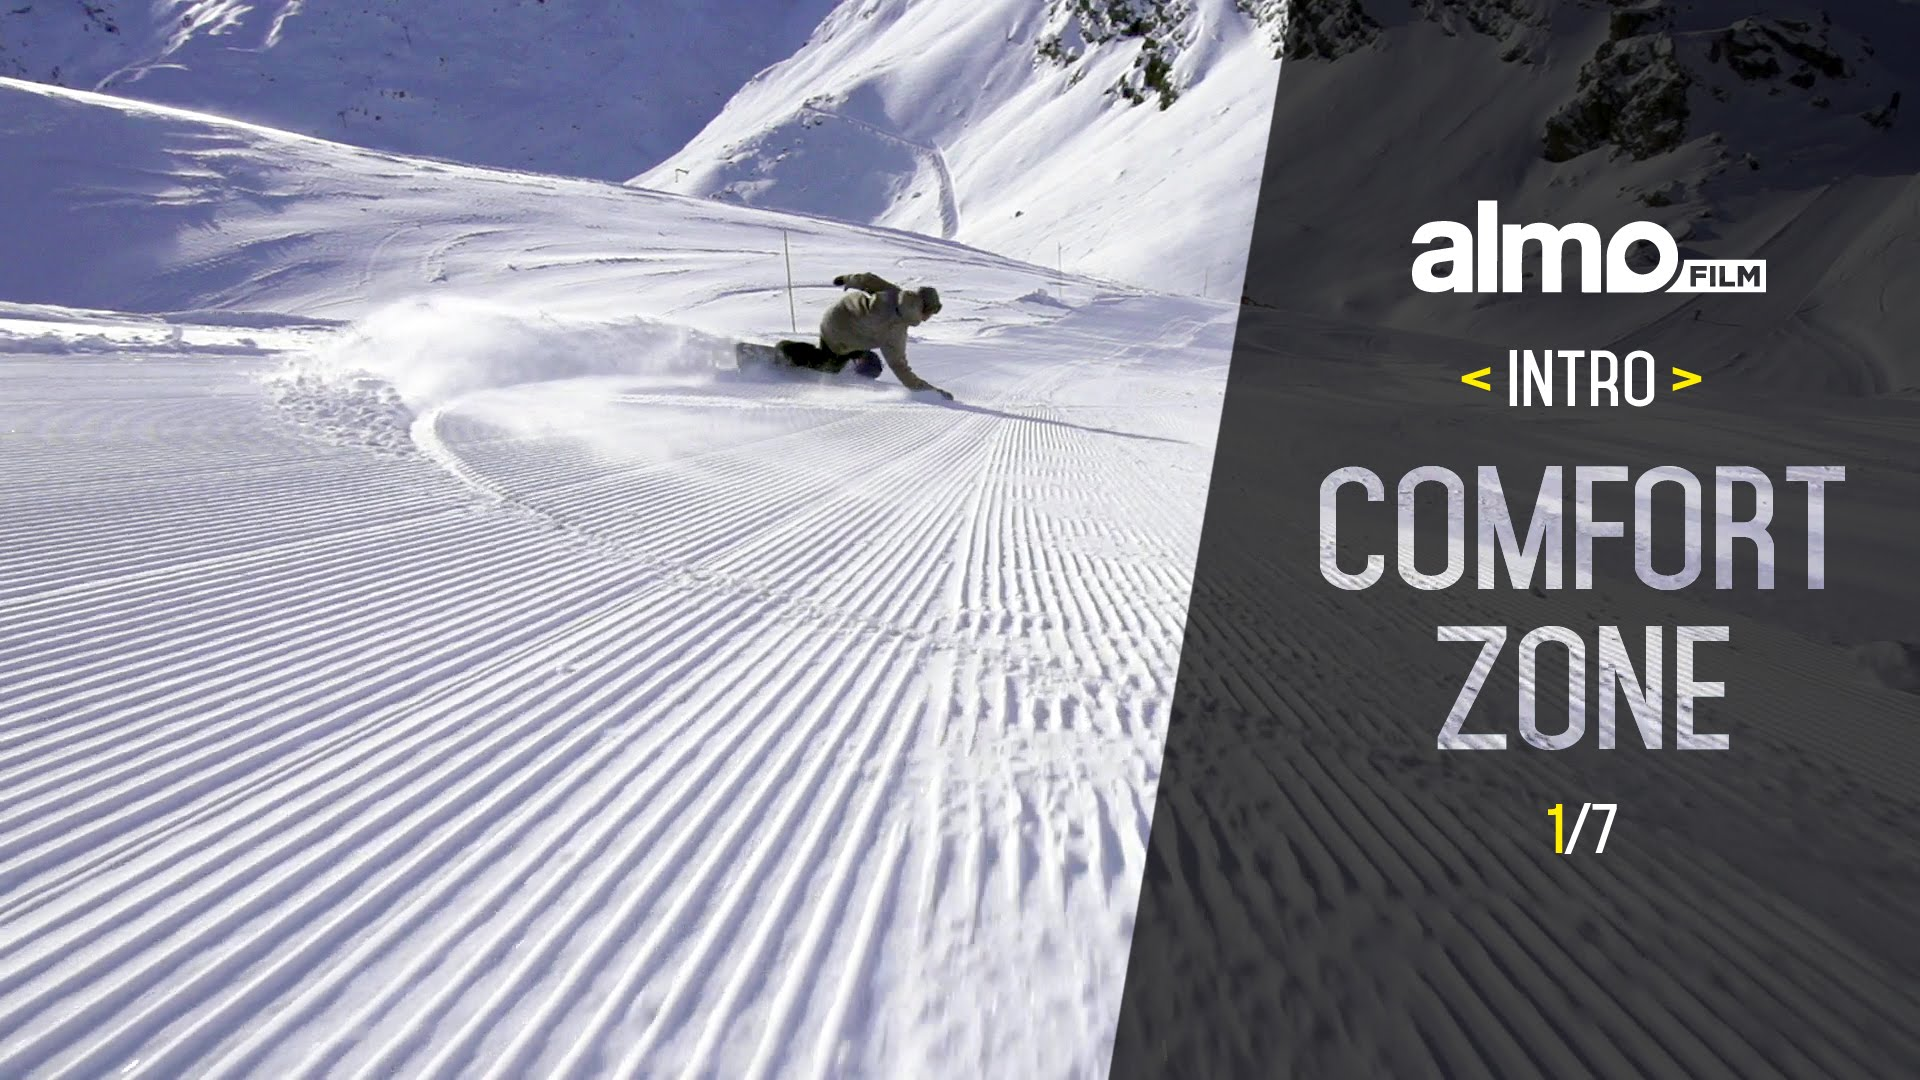 almo-intro-confort-zone